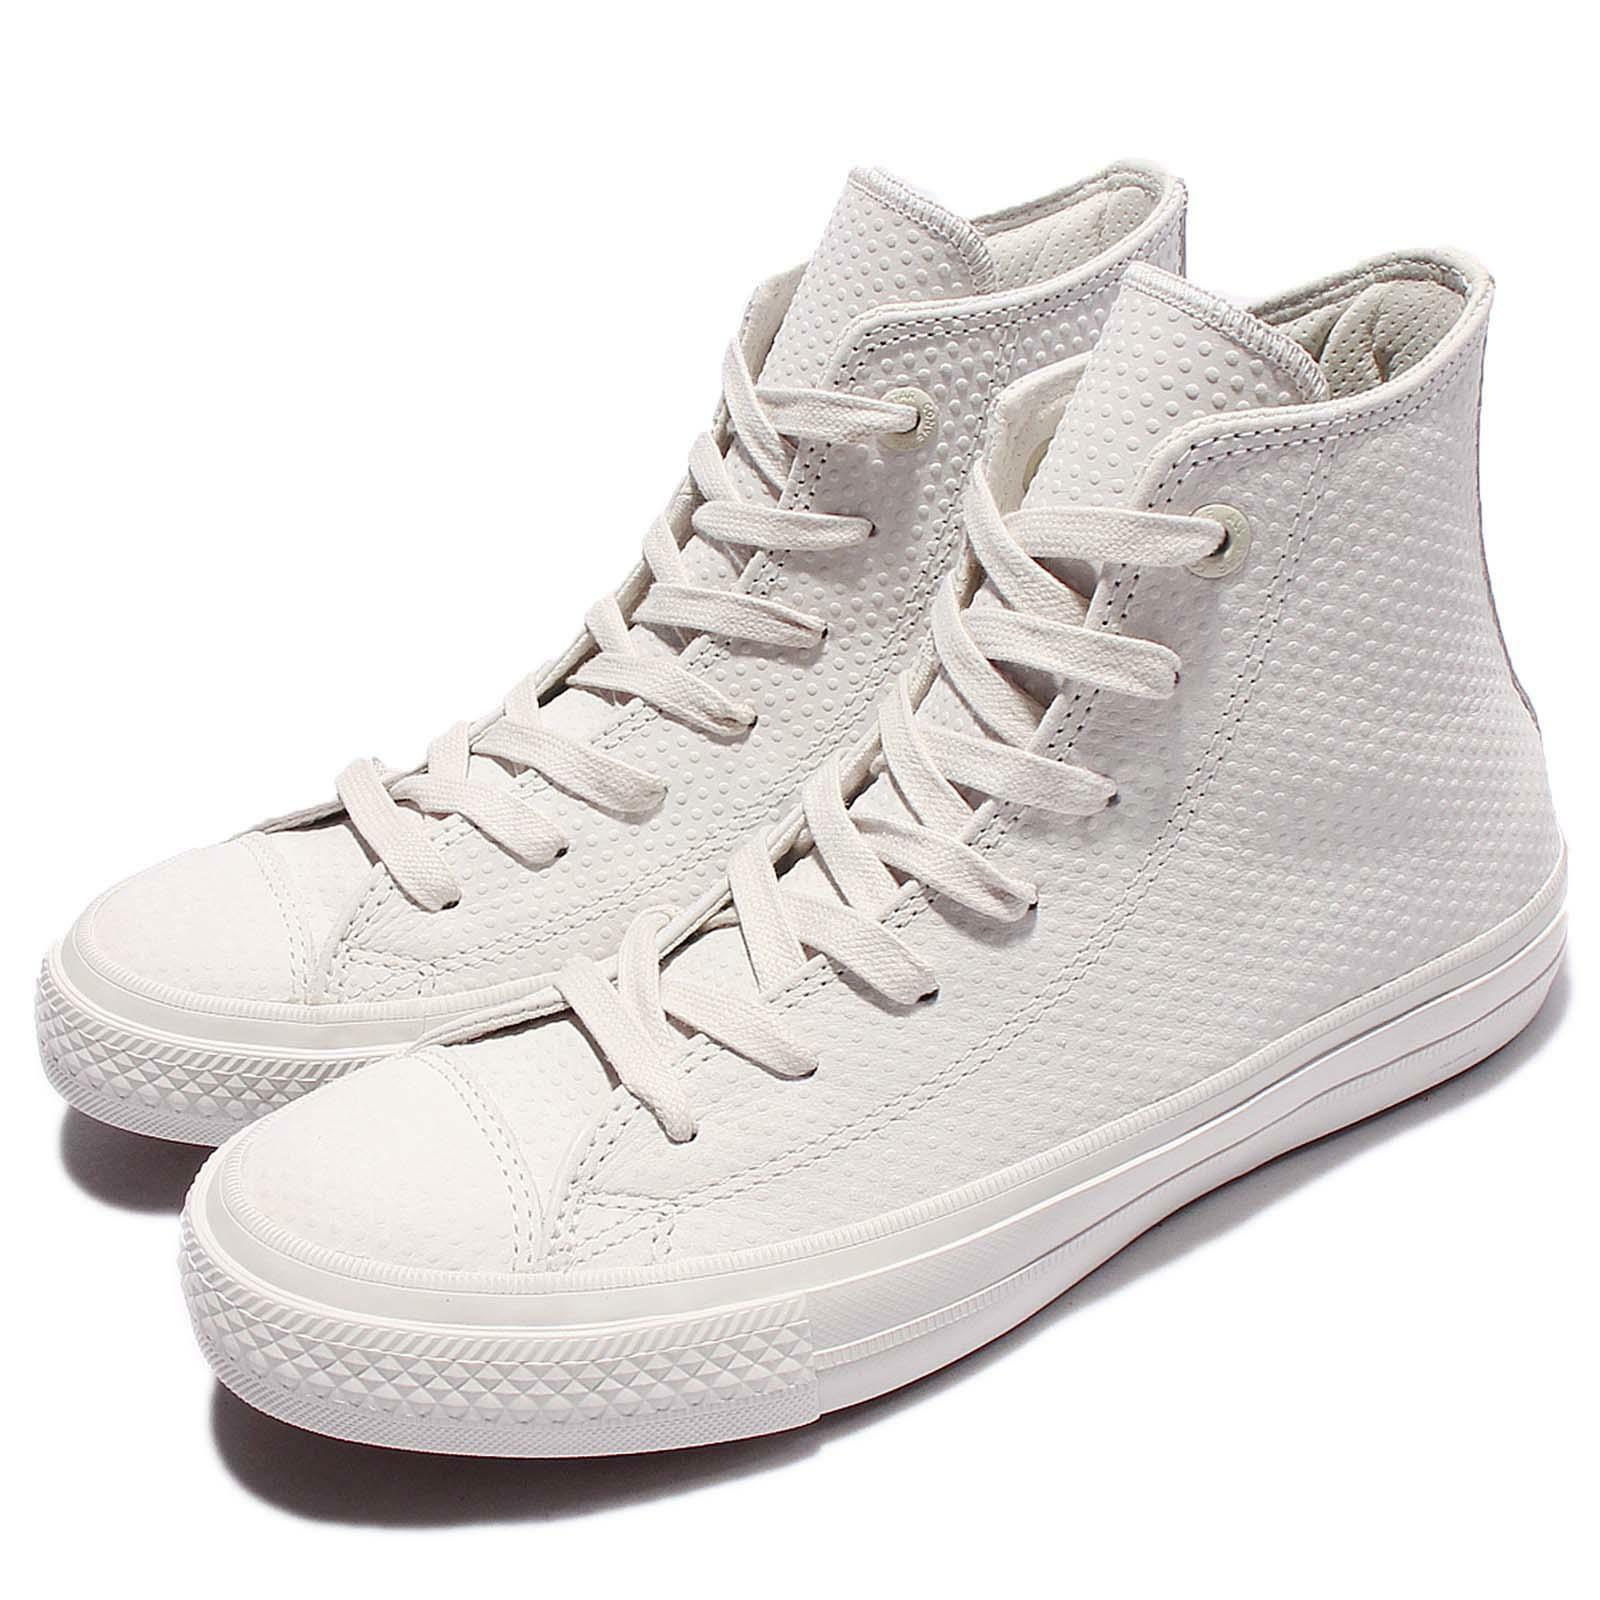 Converse Chuck Taylor All Star II Leather Grey White Men Shoes Sneakers 155763C